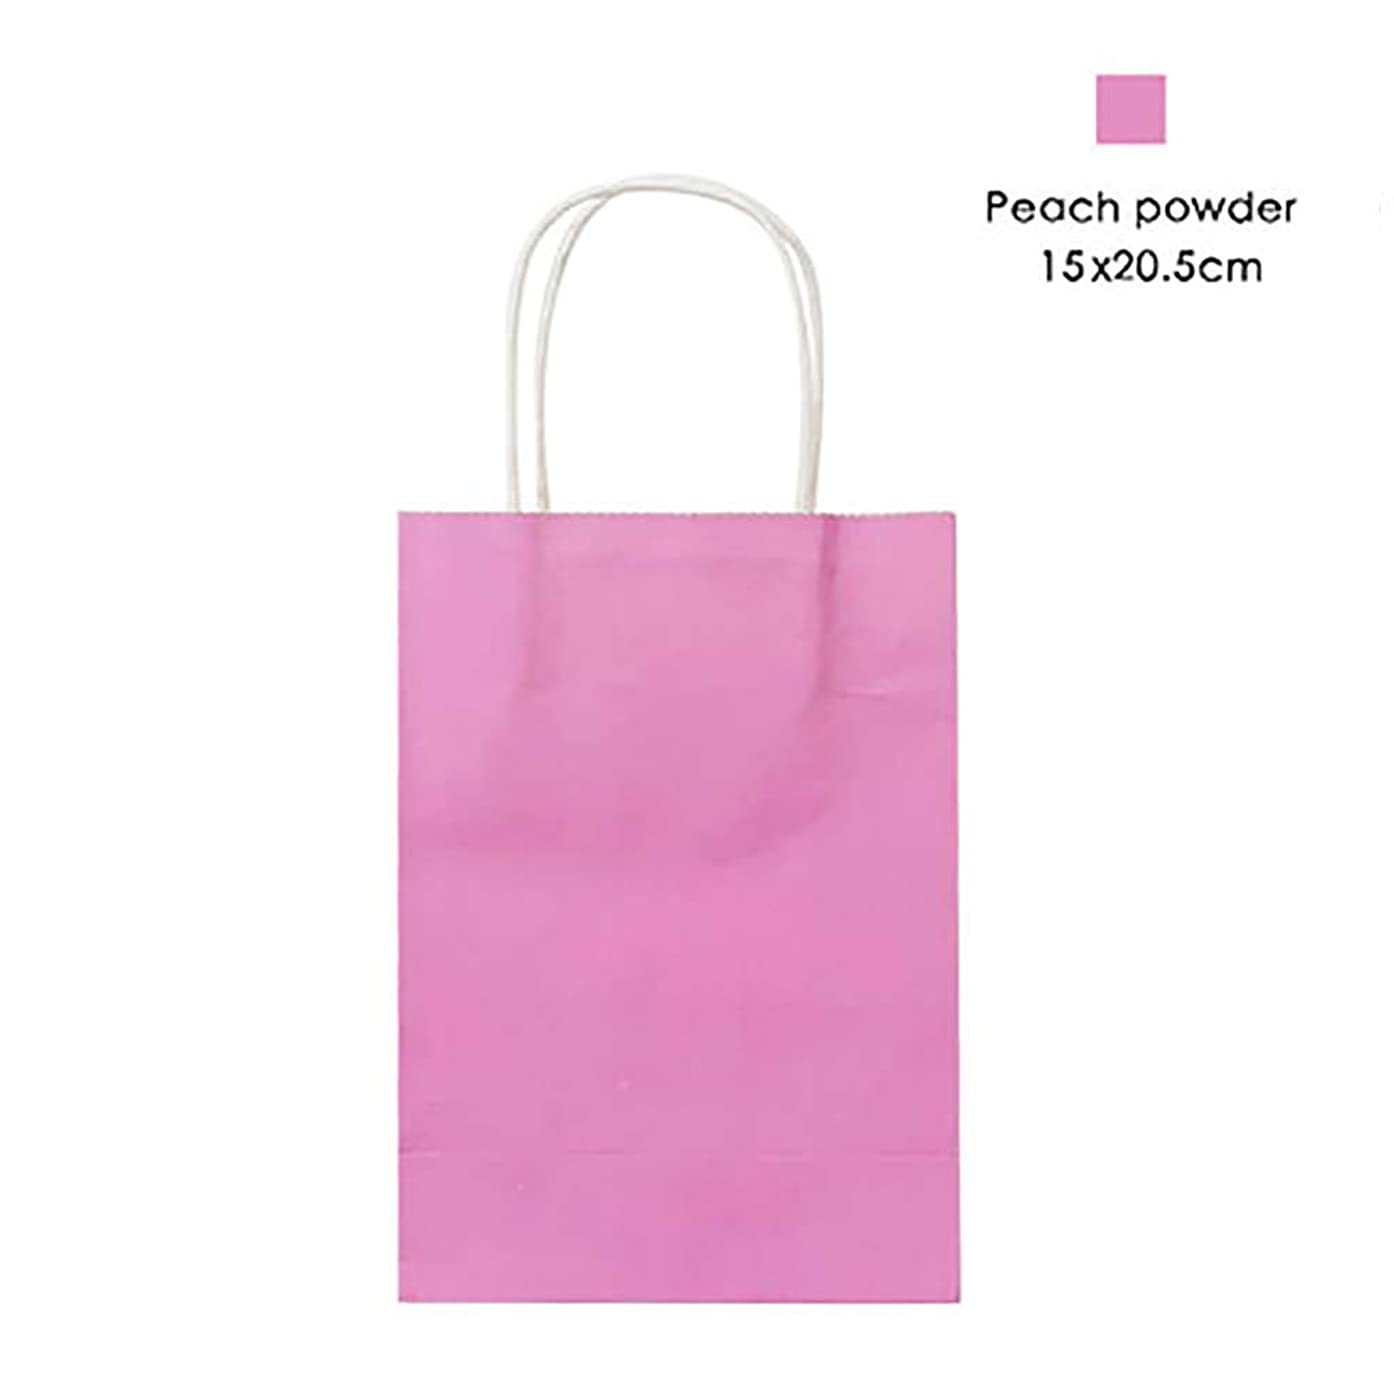 12 Pieces Party Favor Bags Gift Bags Kraft Paper Bags with Handles for Birthday, Tea Party, Wedding, Baby Shower and Party Celebrations - Small, Pink